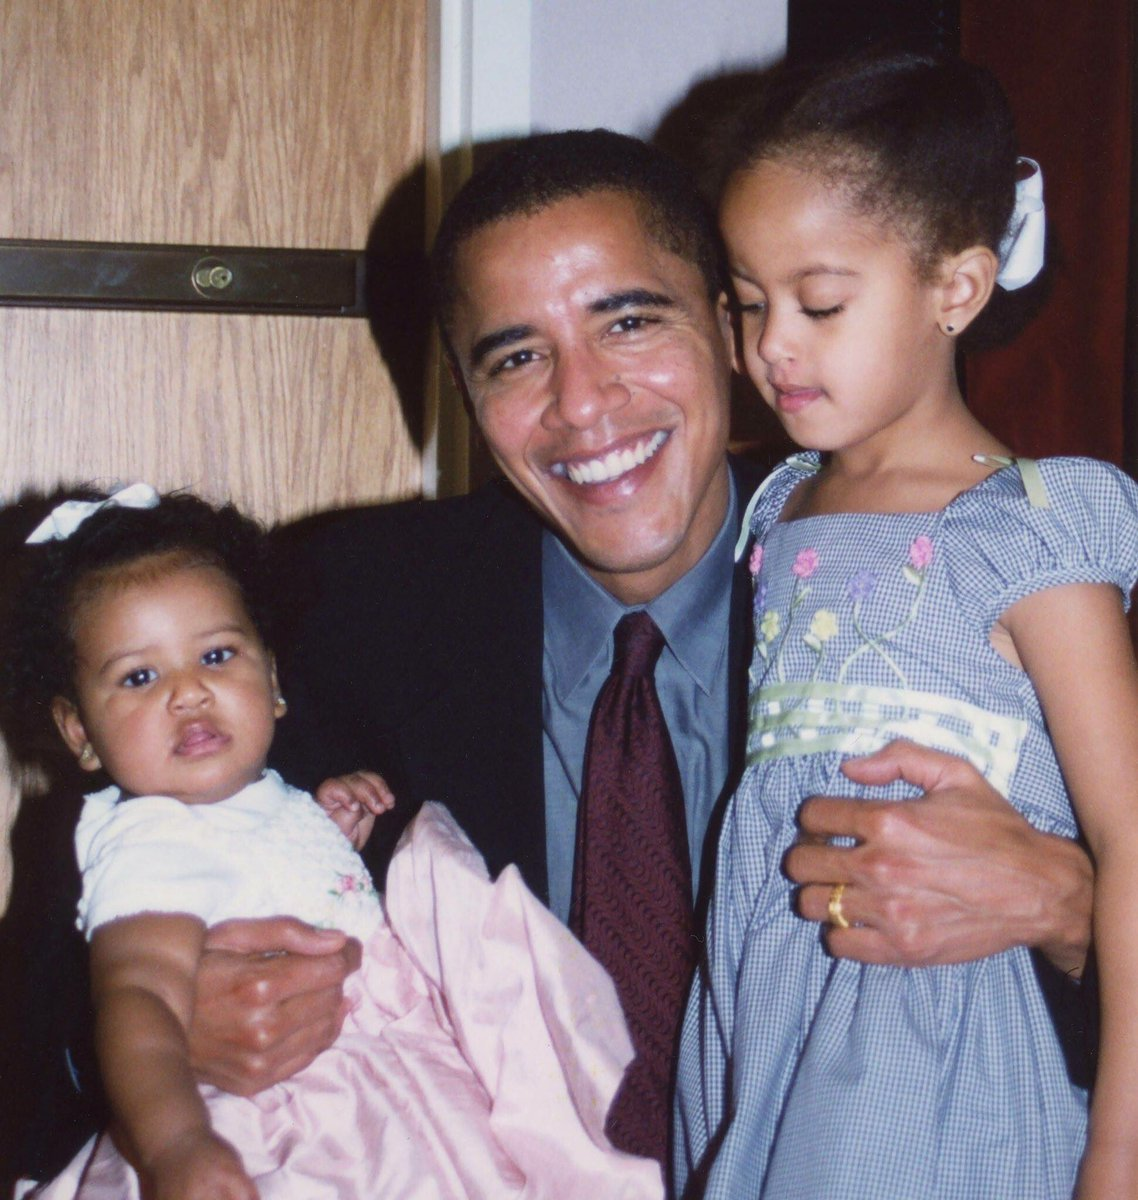 Happy Fathers Day to the daddy of them all #44.  #Barack Obama <br>http://pic.twitter.com/tz6iwFFhH3